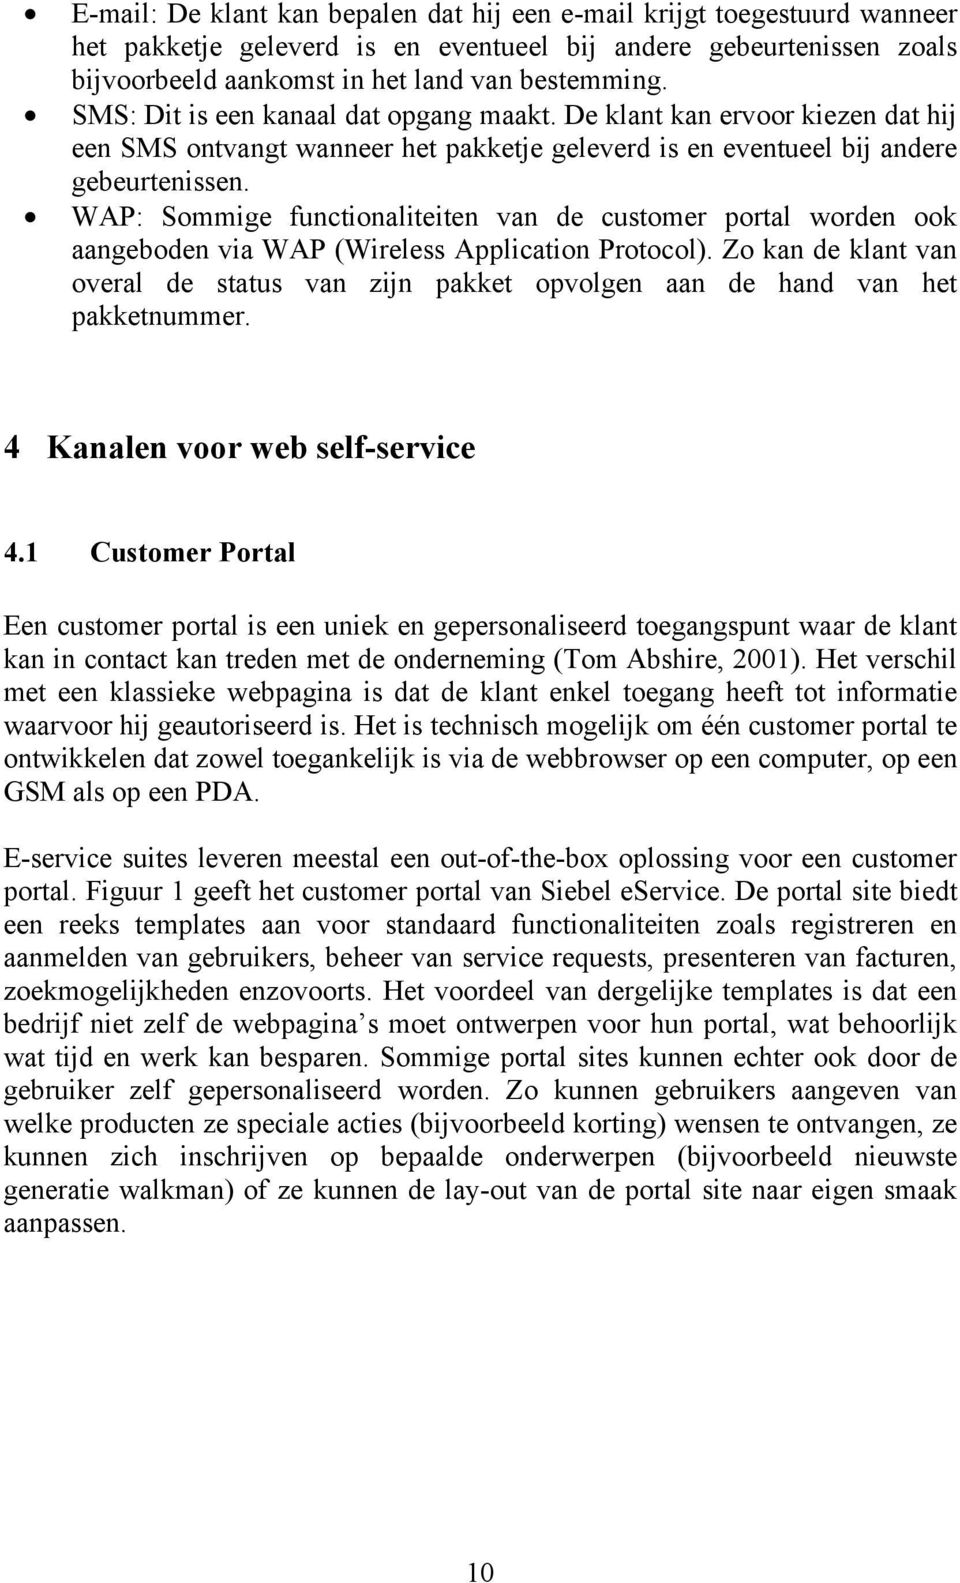 WAP: Sommige functionaliteiten van de customer portal worden ook aangeboden via WAP (Wireless Application Protocol).